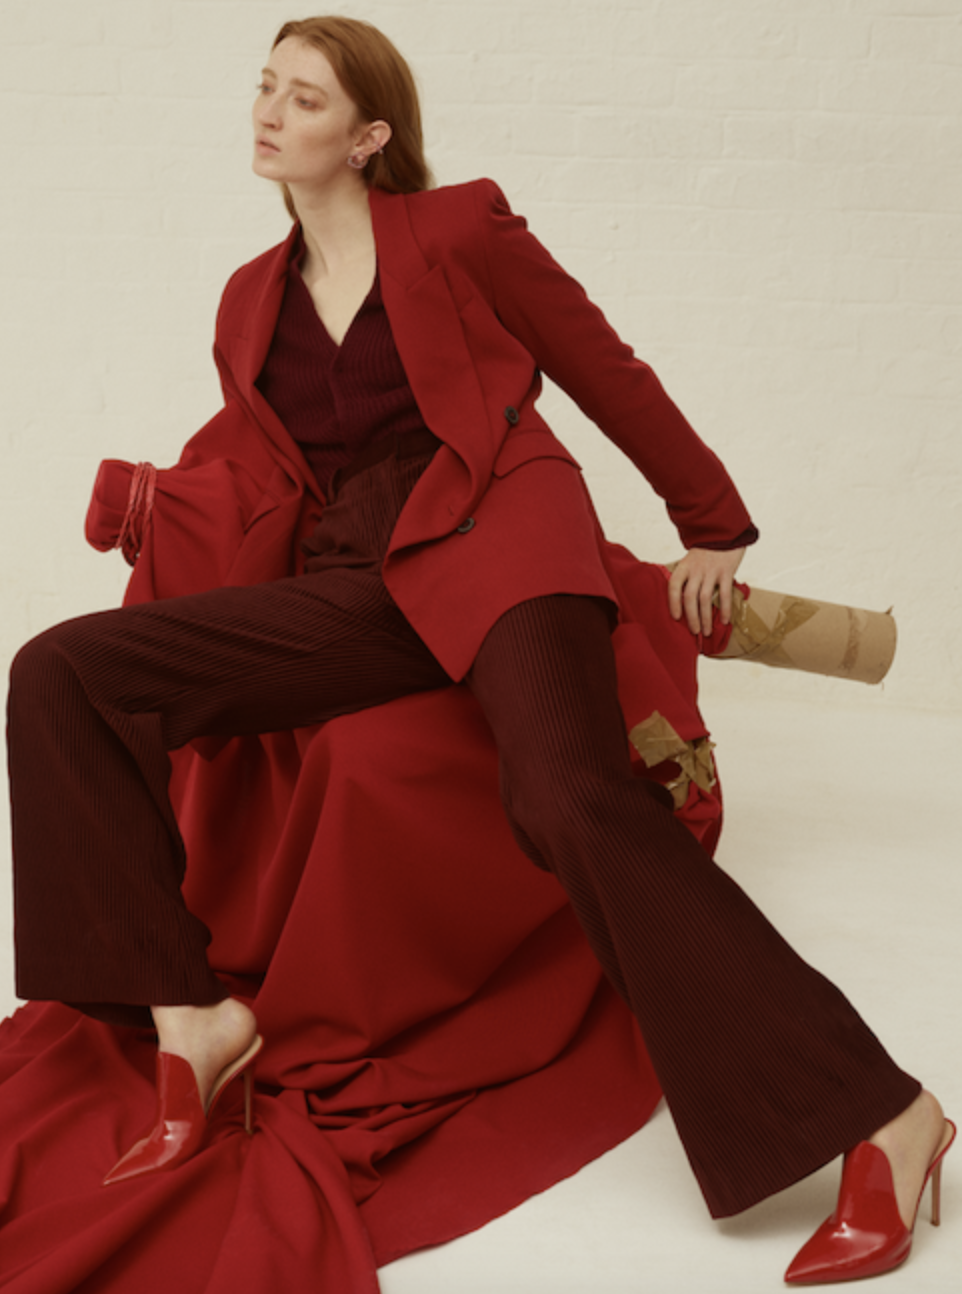 Assisting Sophie Henderson for The Red Issue for Stylist Magazine.